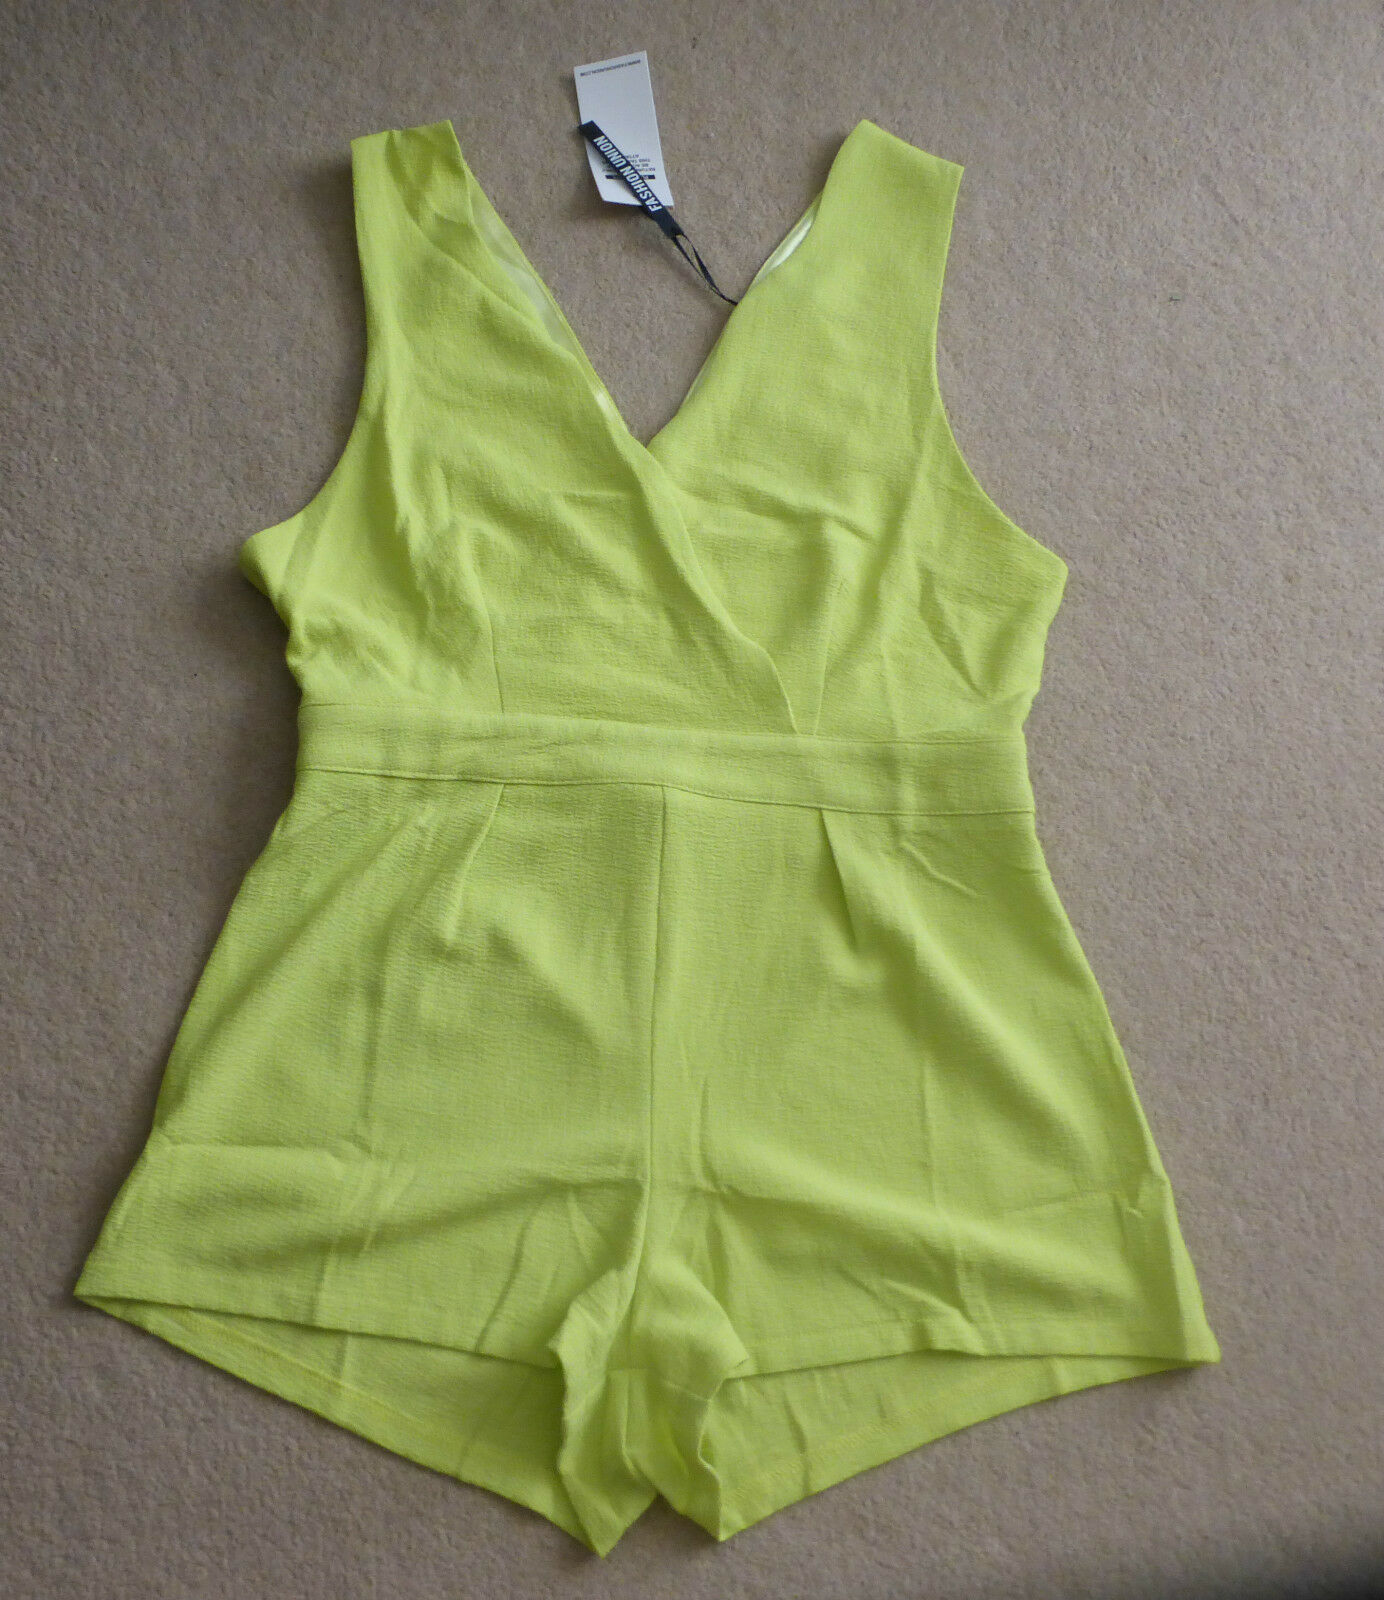 New Ladies Romper Playsuit  Size  UK 14 BNWT